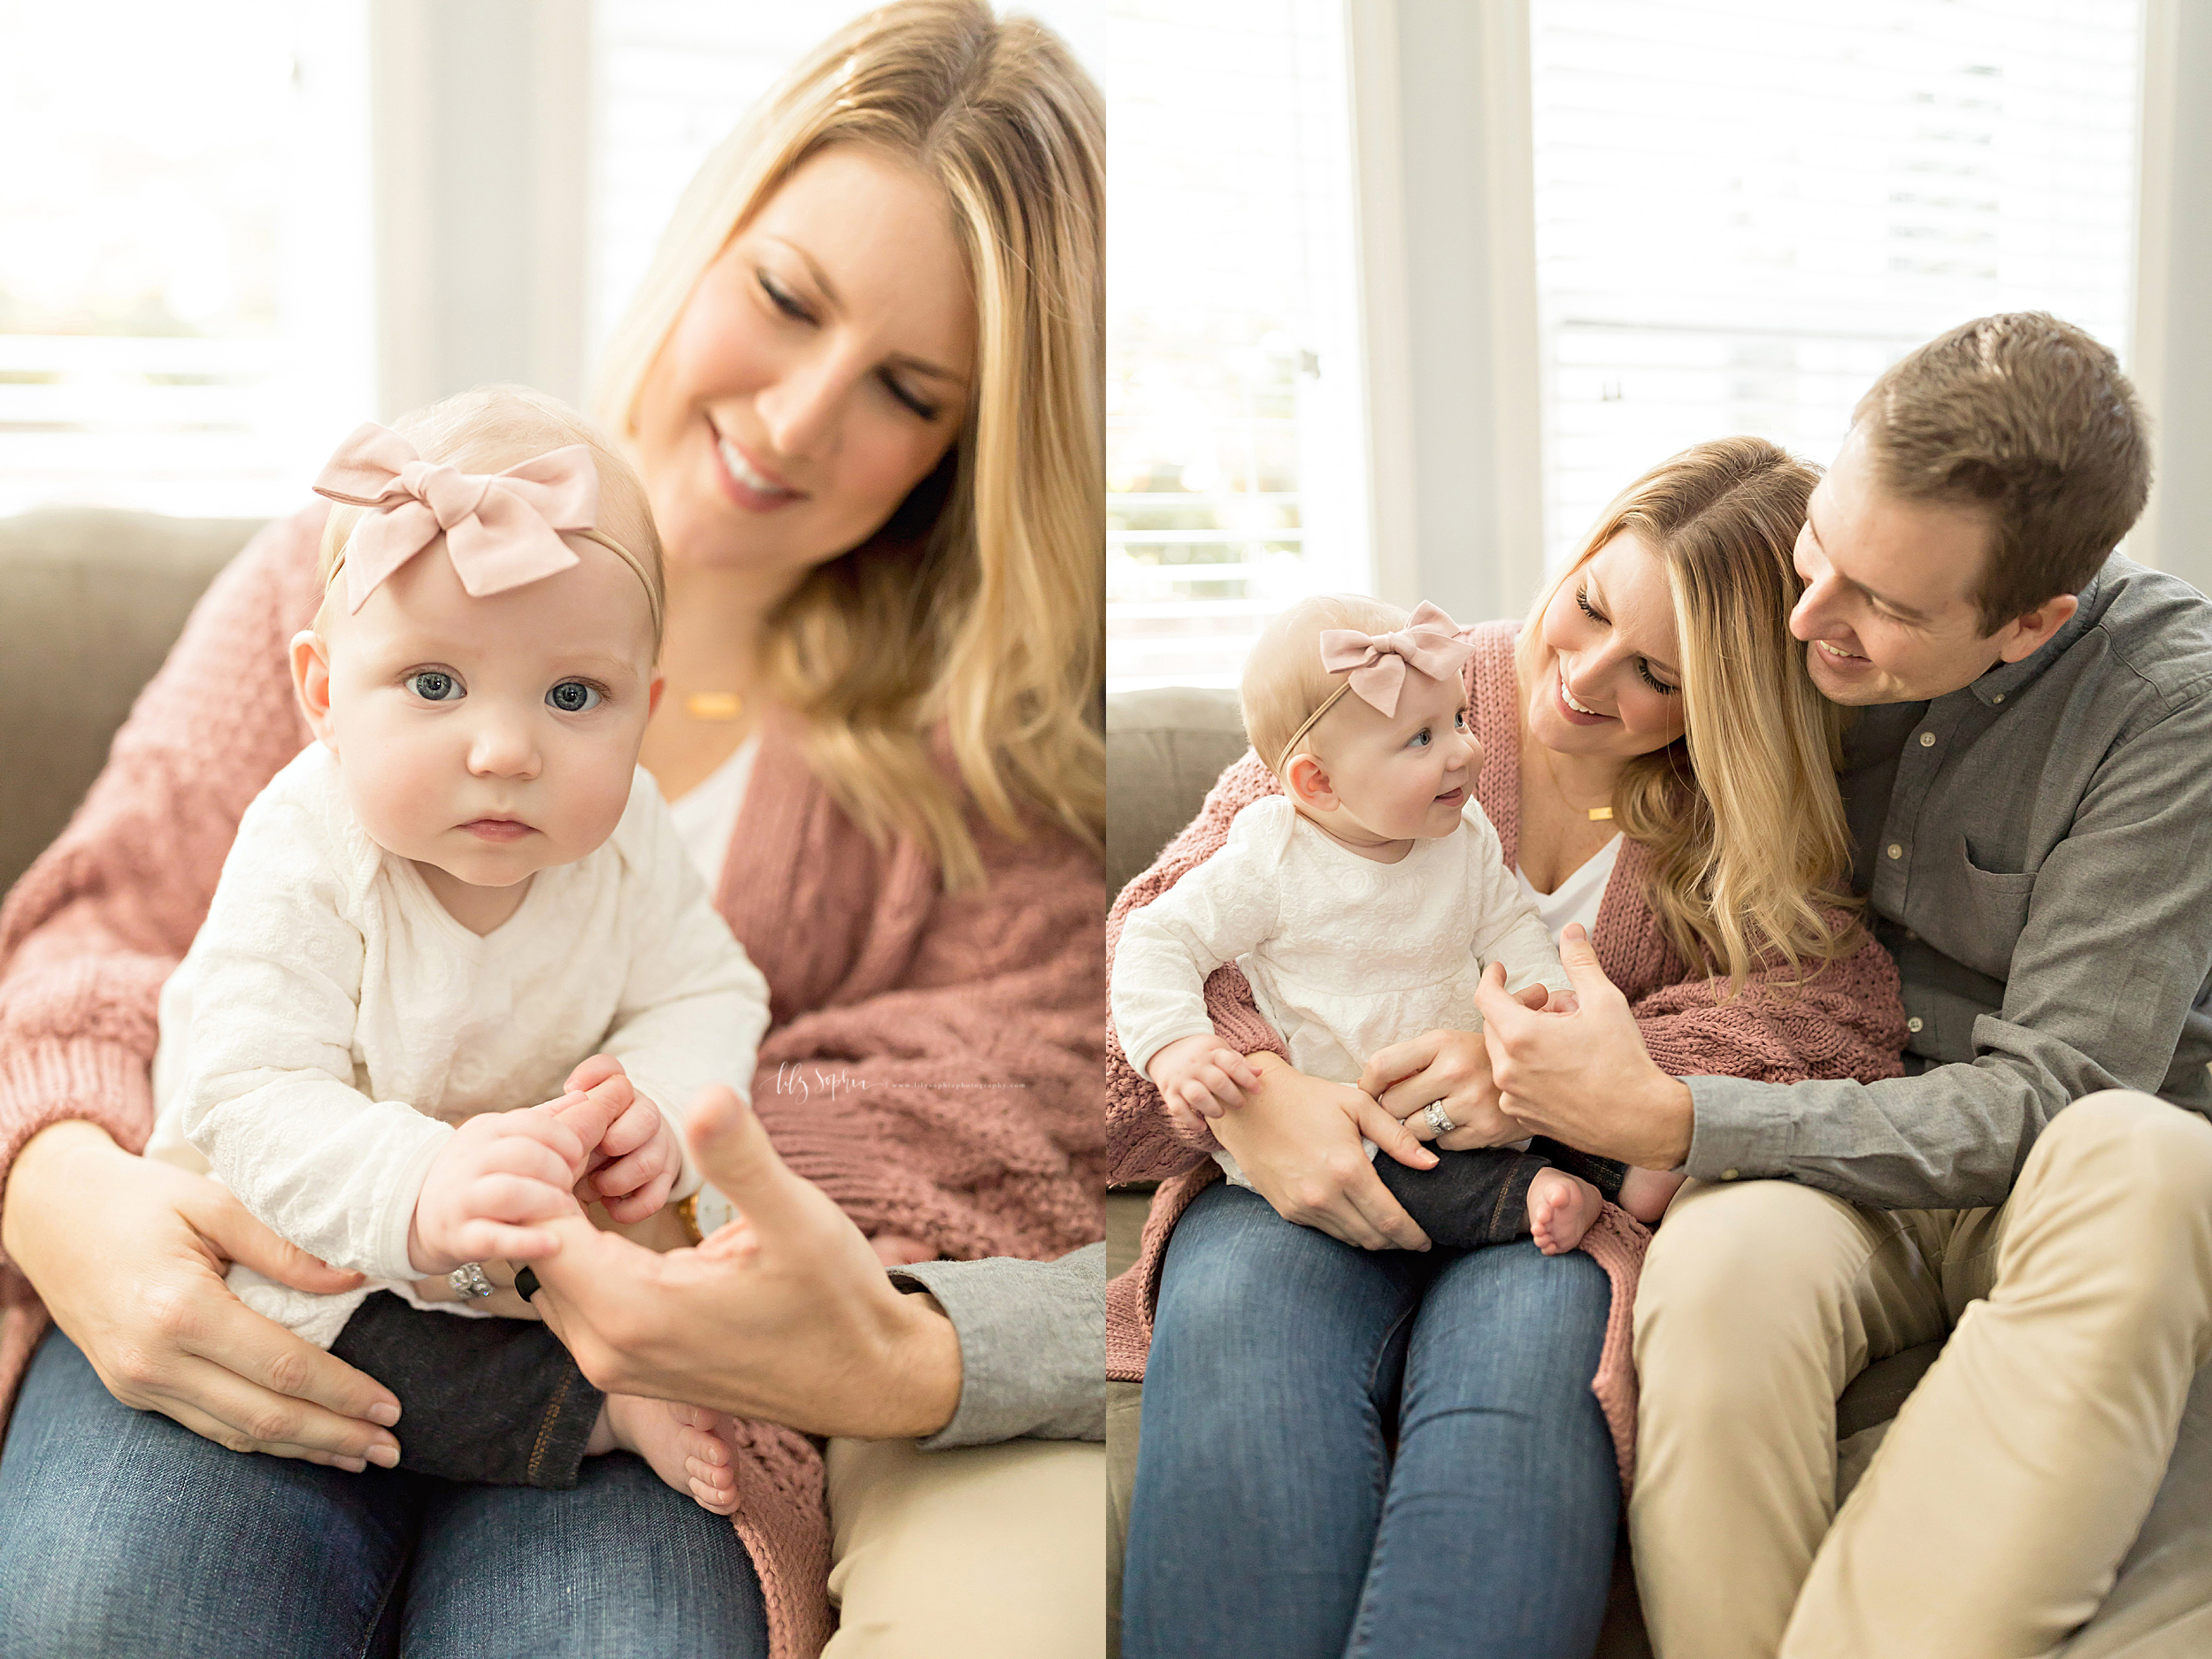 atlanta-midtown-brookhaven-ashford-dunwoody-virginia-highlands-roswell-decatur-lily-sophia-photography-in-home-six-month-milestone-family-lifestyle-session-sandy-springs_0652.jpg